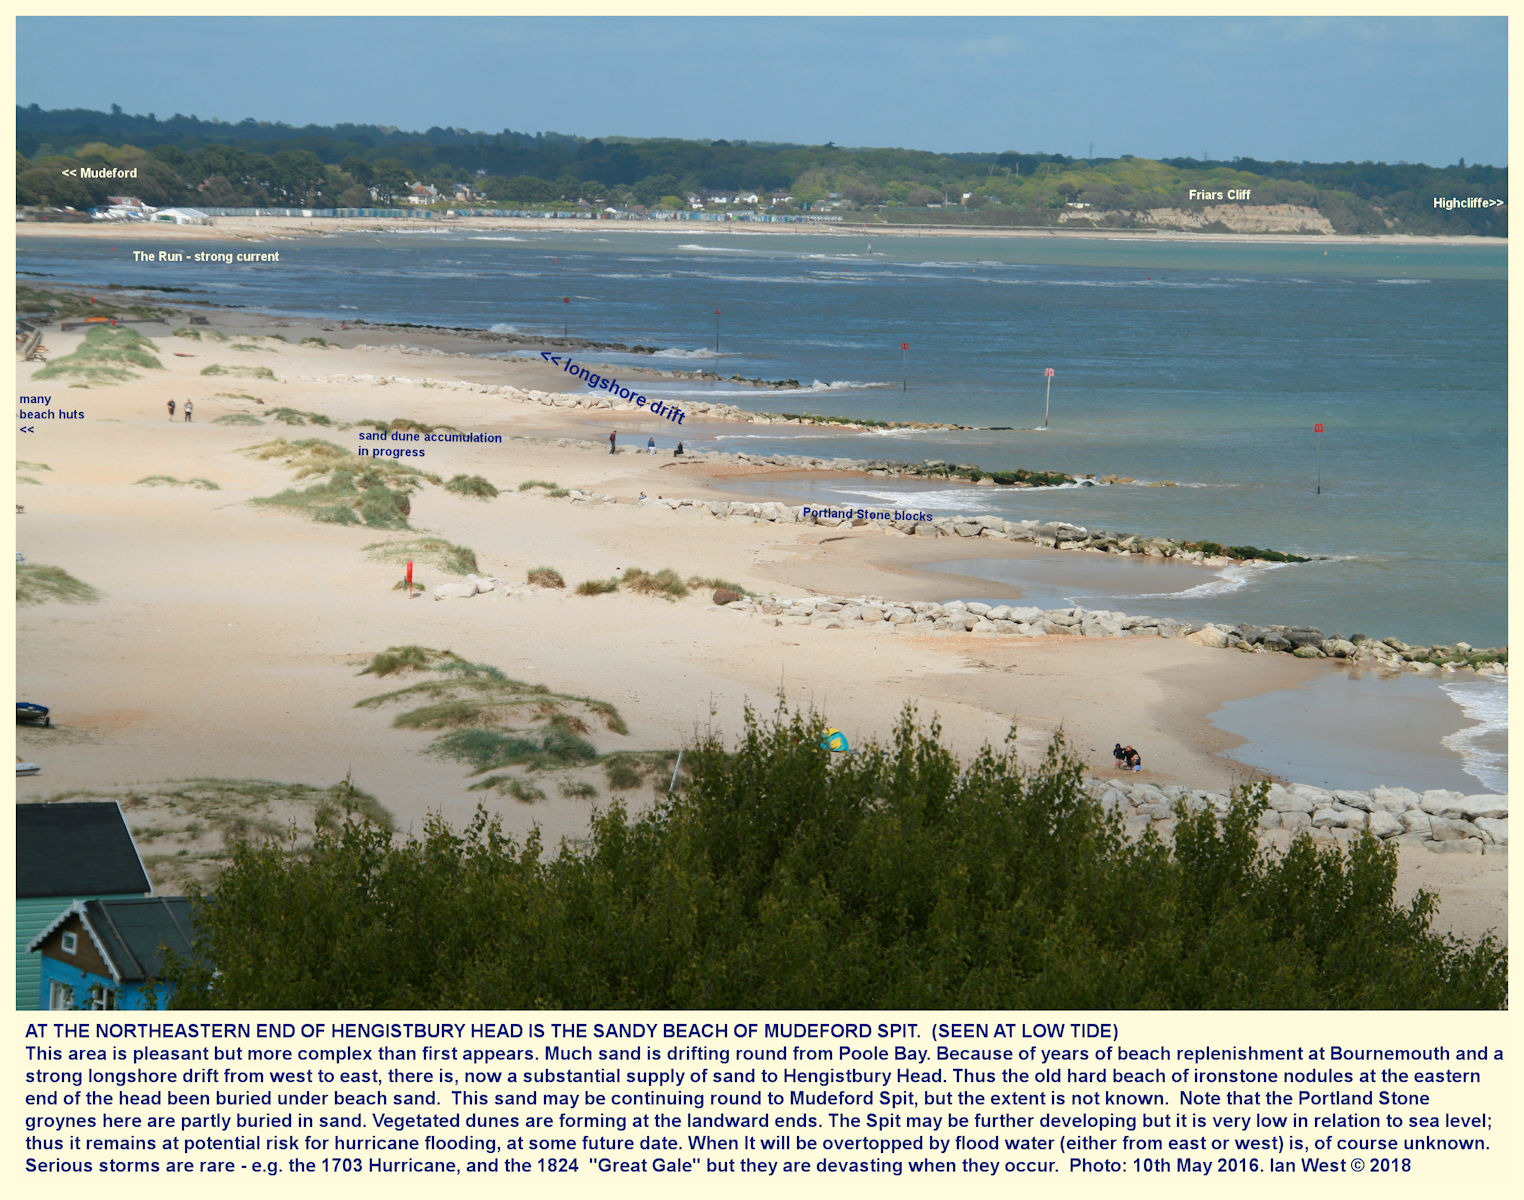 The southern part of Mudeford Spit, adjacent to  Hengistbury Head from which it is seen, has at present a good supply of sand, 10th May 2016